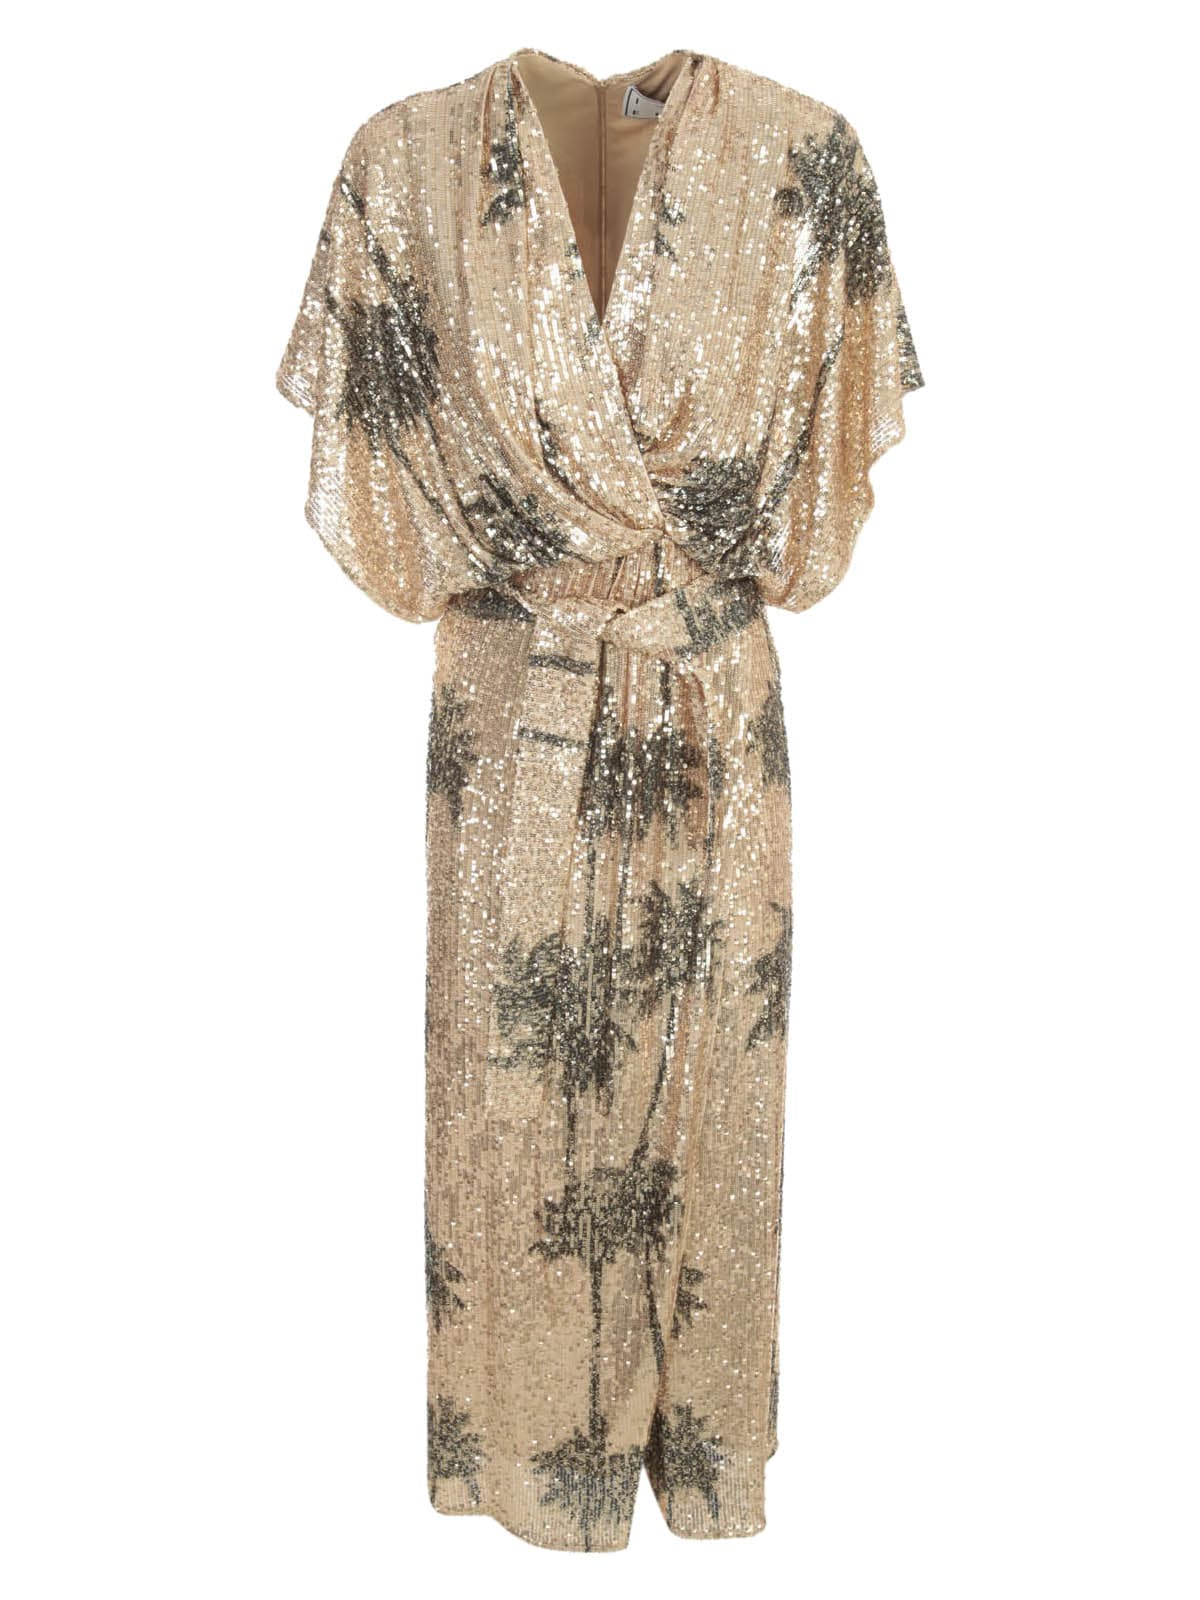 Buy In The Mood For Love Palm Tree Printed Sofy Sequin Wrap Dress online, shop In The Mood For Love with free shipping